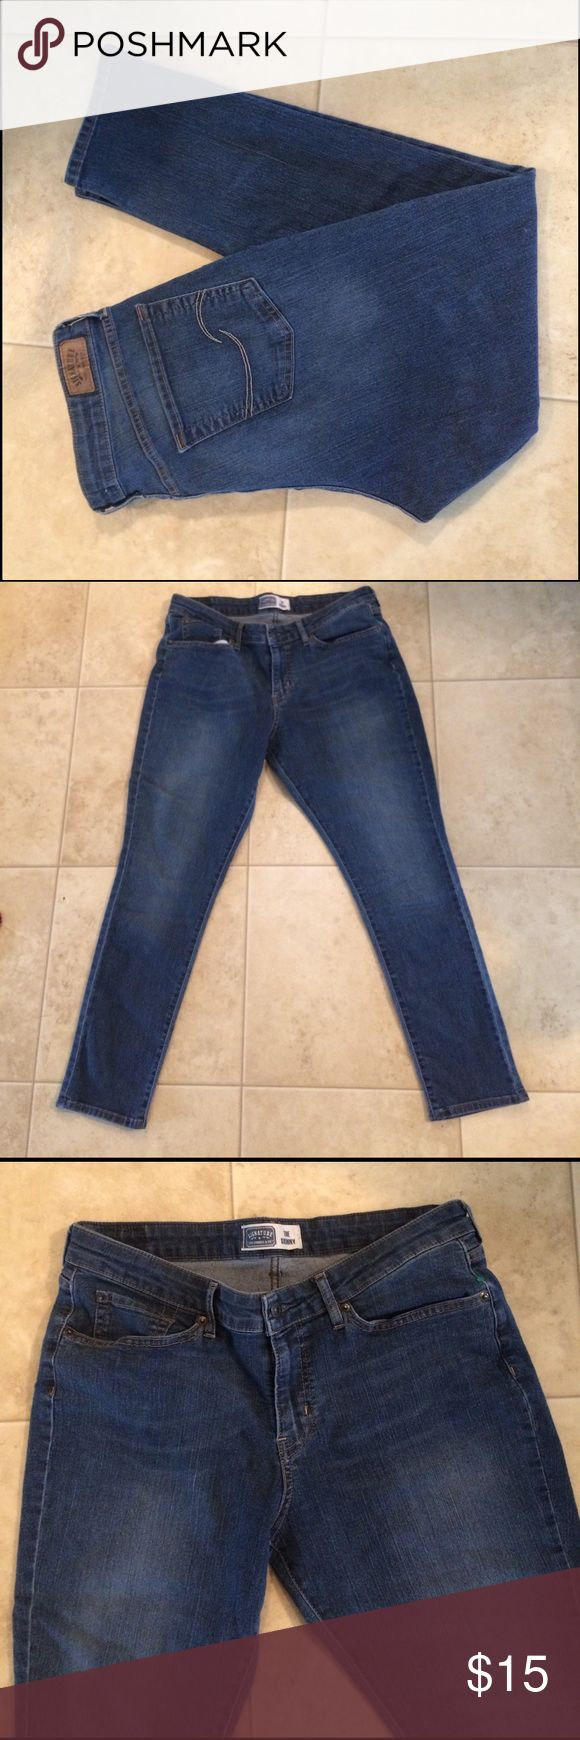 $12 Levi's the skinny stretch skinny jean like new Like new condition! Hi! Thanks for the like! Check out the super cheap bundle prices in my listing descriptions and let me know if you have any questions or need any help! Levi's Jeans Skinny